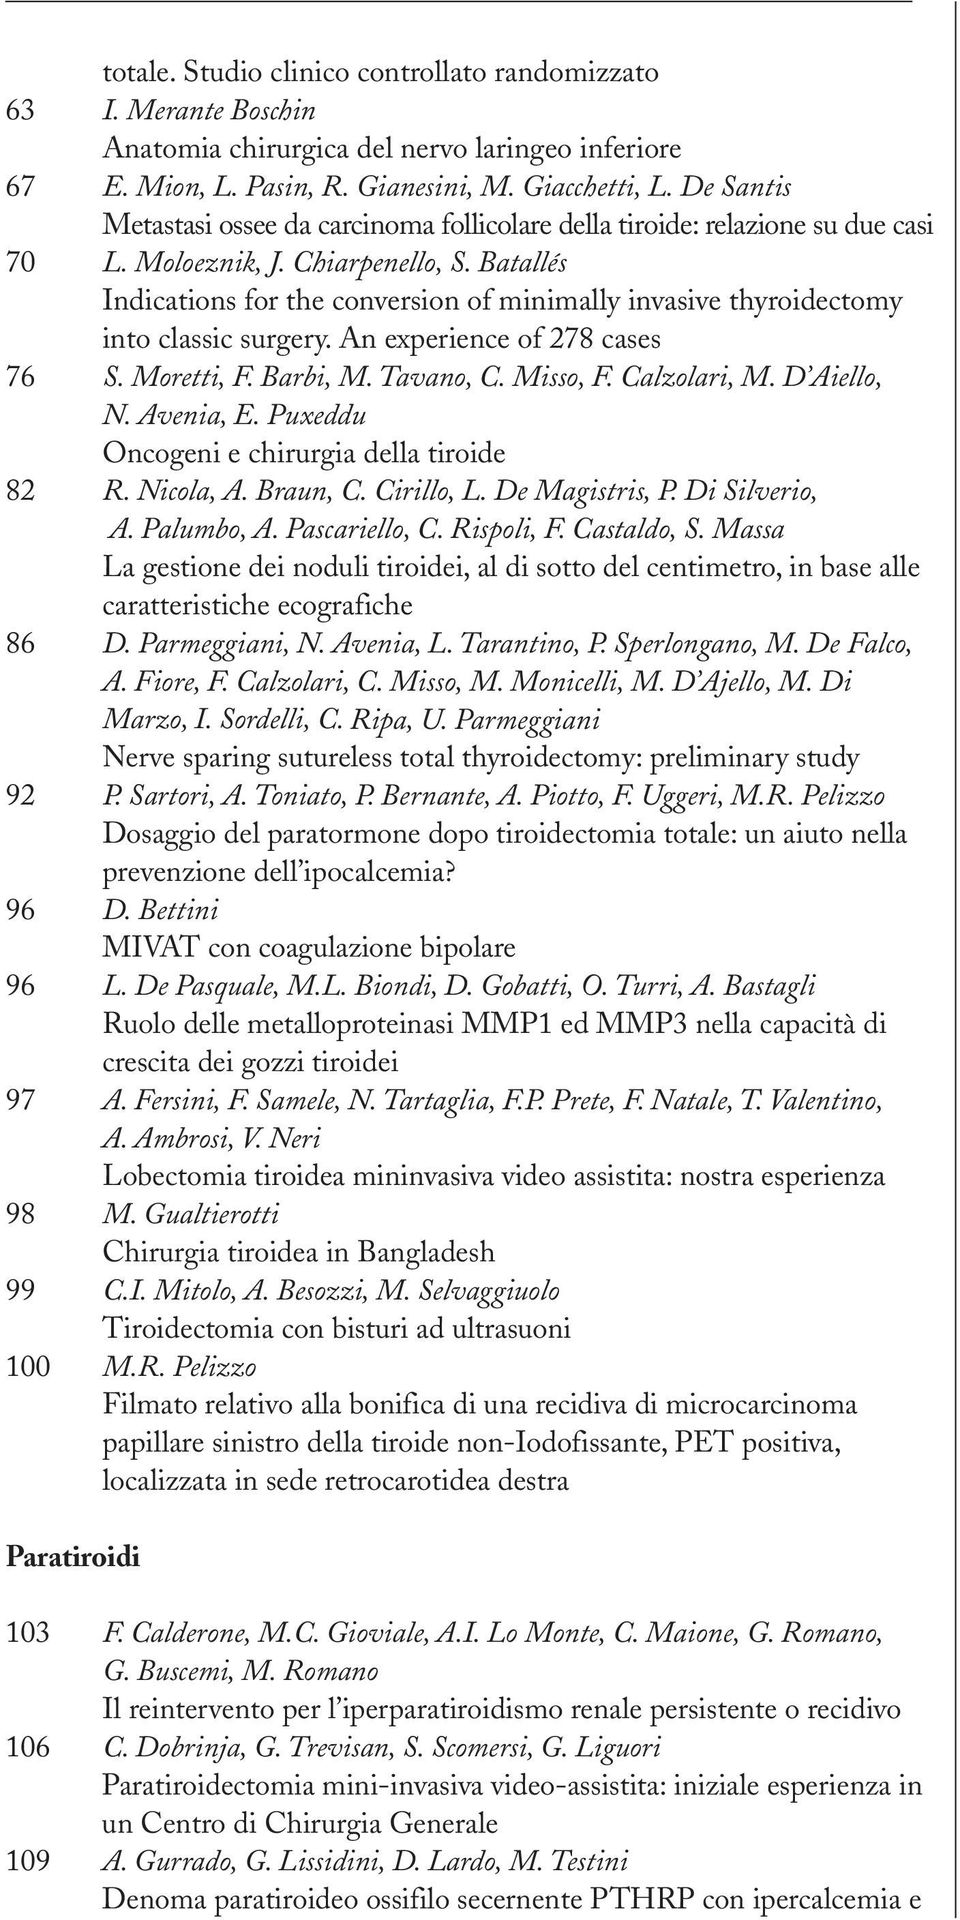 Batallés Indications for the conversion of minimally invasive thyroidectomy into classic surgery. An experience of 278 cases 76 S. Moretti, F. Barbi, M. Tavano, C. Misso, F. Calzolari, M. D Aiello, N.